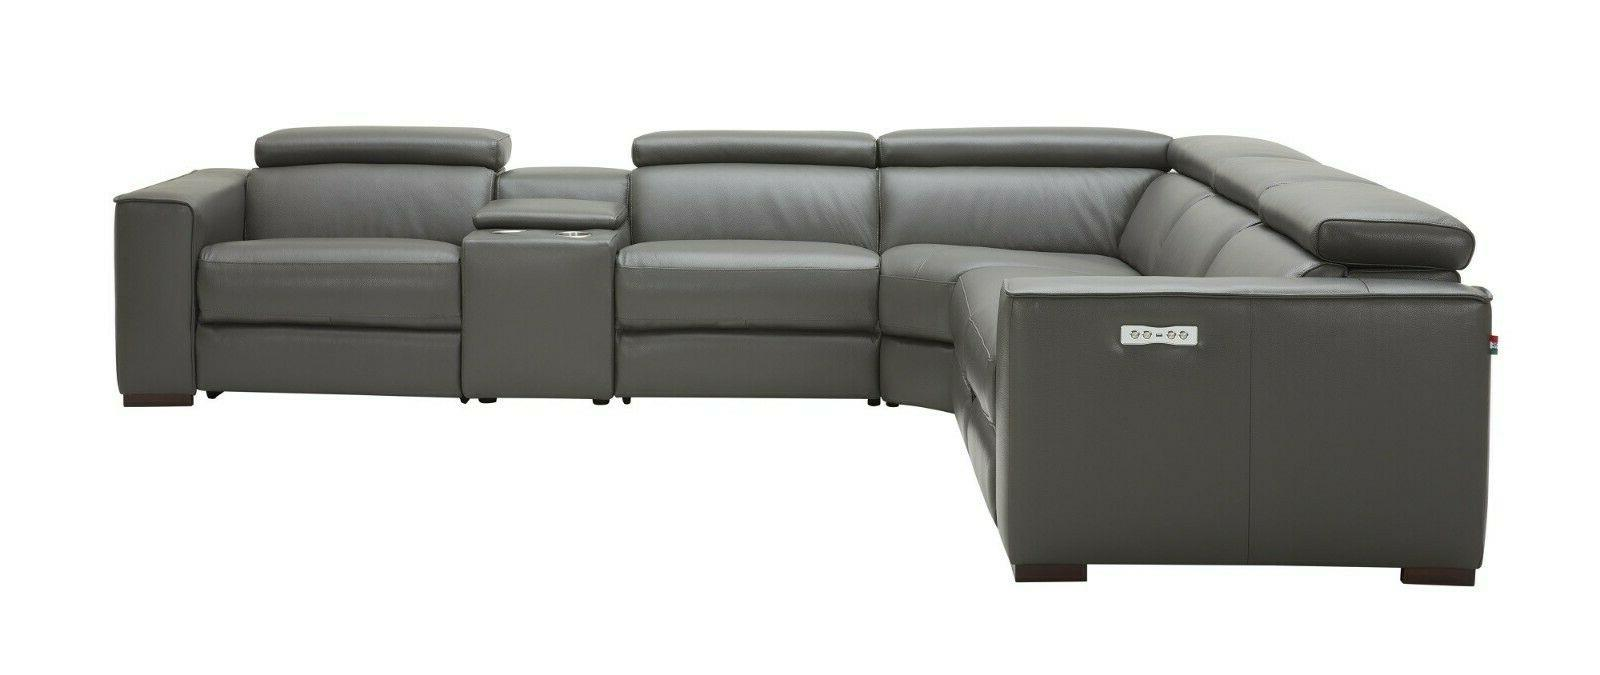 J&M Furniture Gray Grain Motion Sectional Pieces